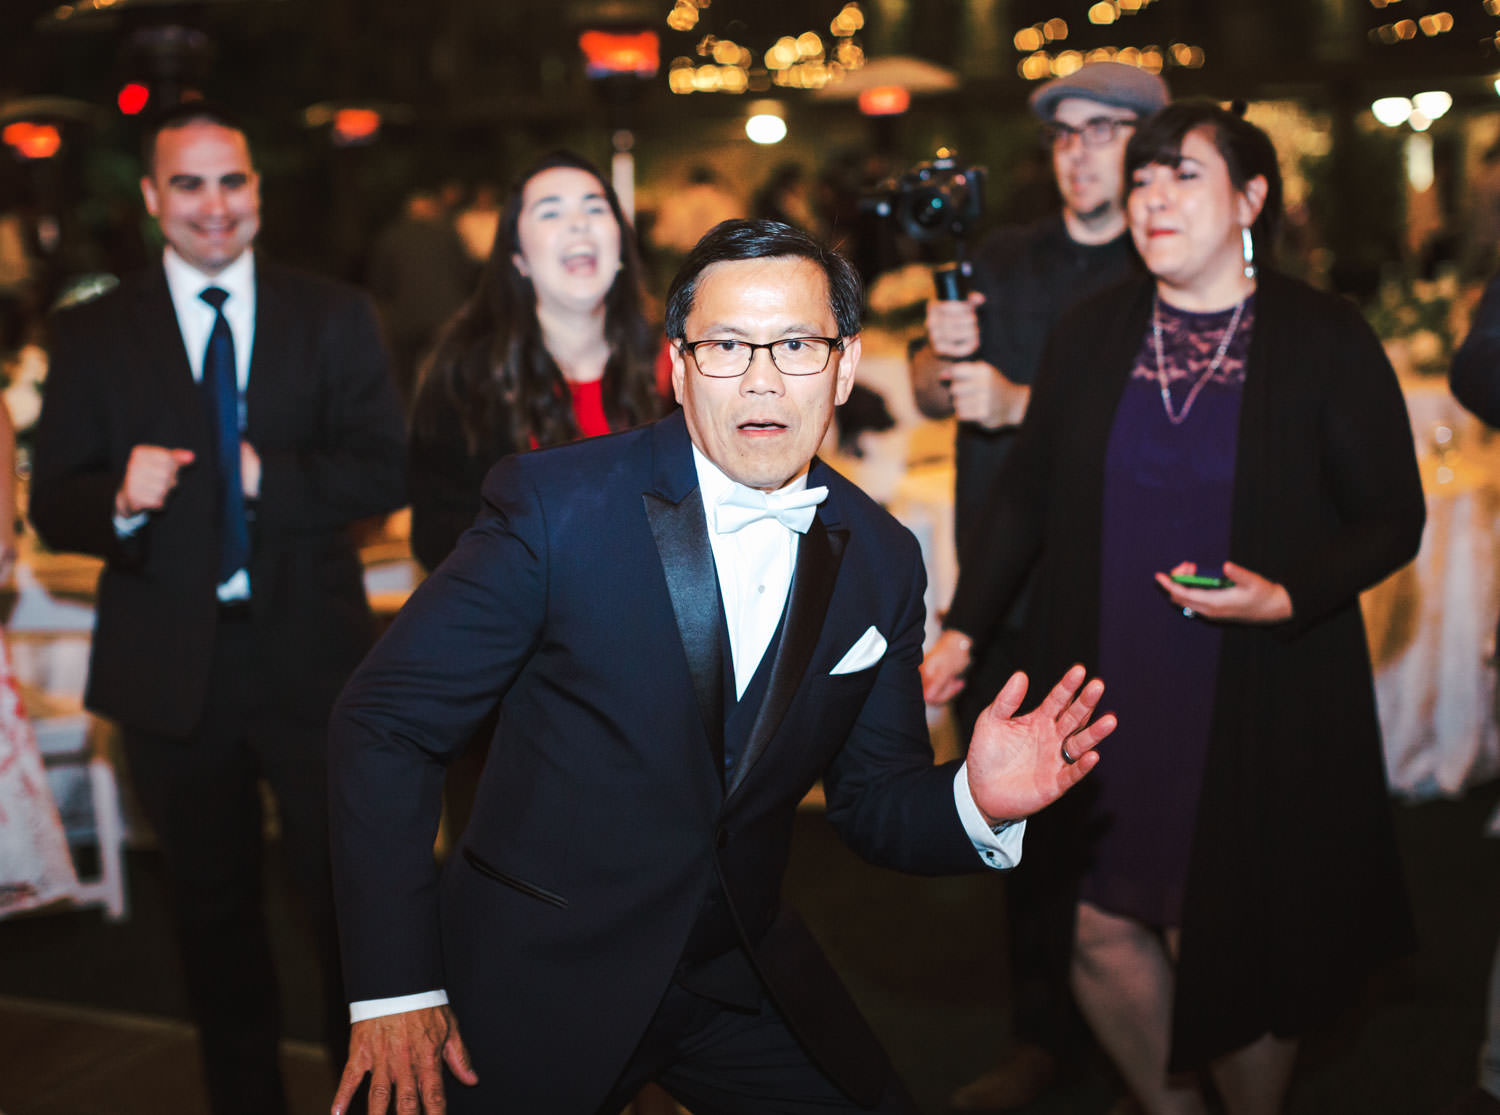 Father of the bride dancing during a wedding reception at Humphreys by Cavin Elizabeth Photography